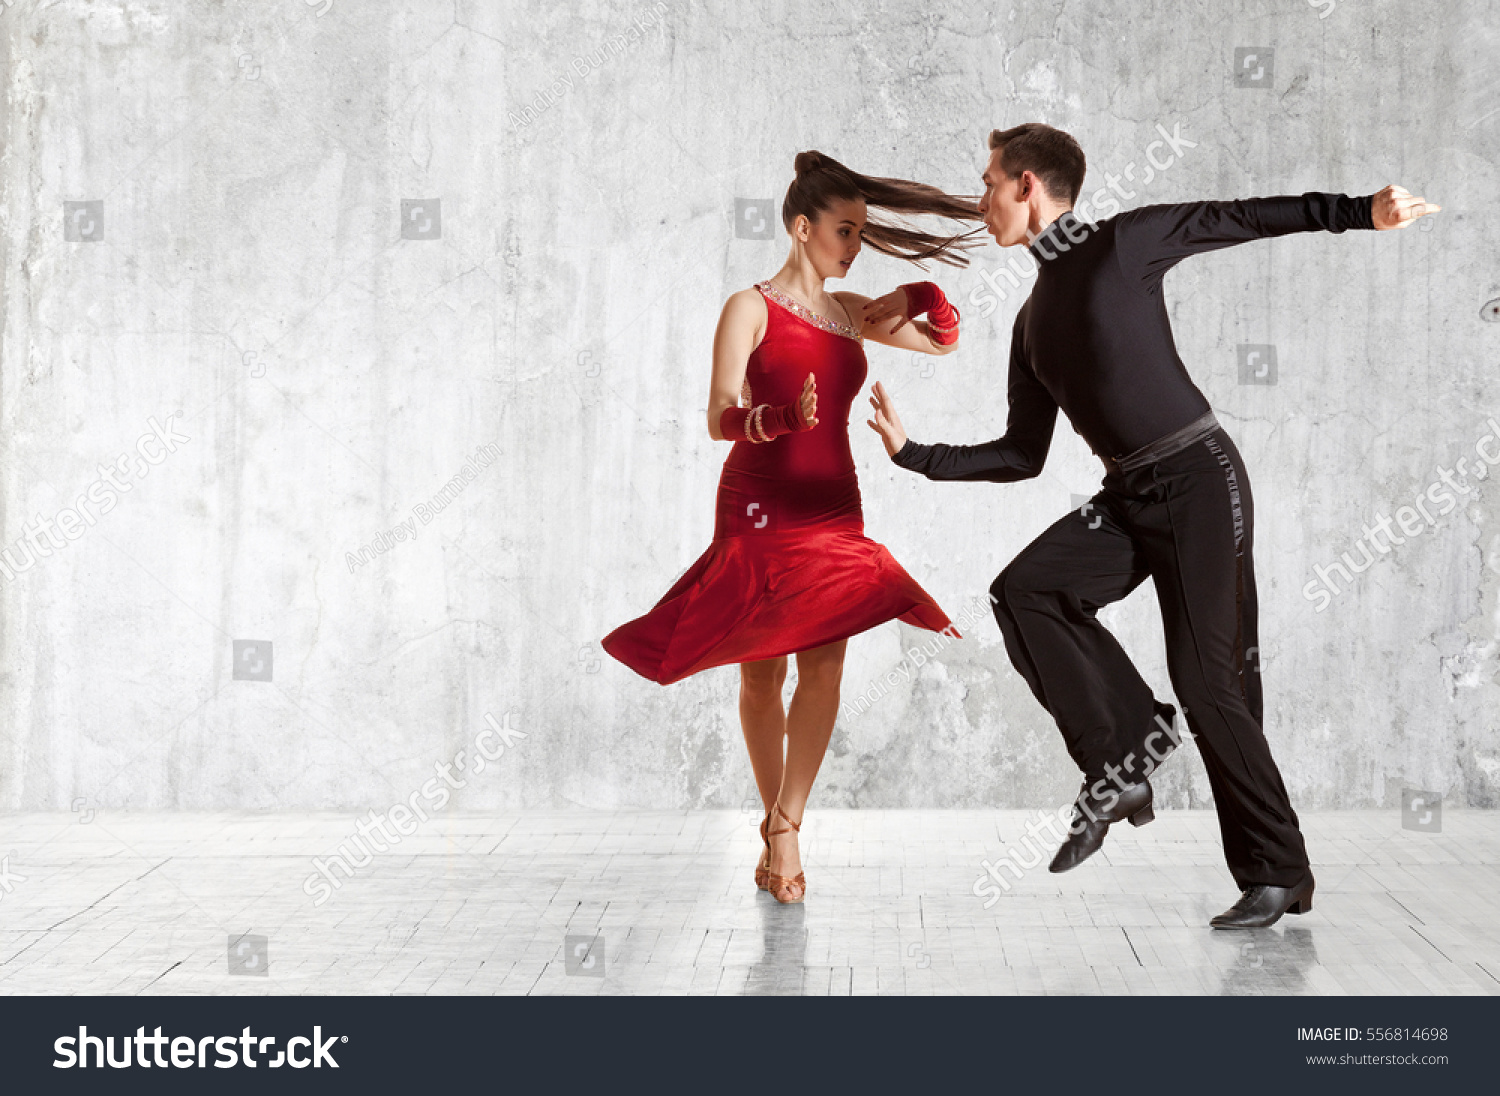 Dance Beautiful Couple Dancing Ballroom Dancing Stock ...